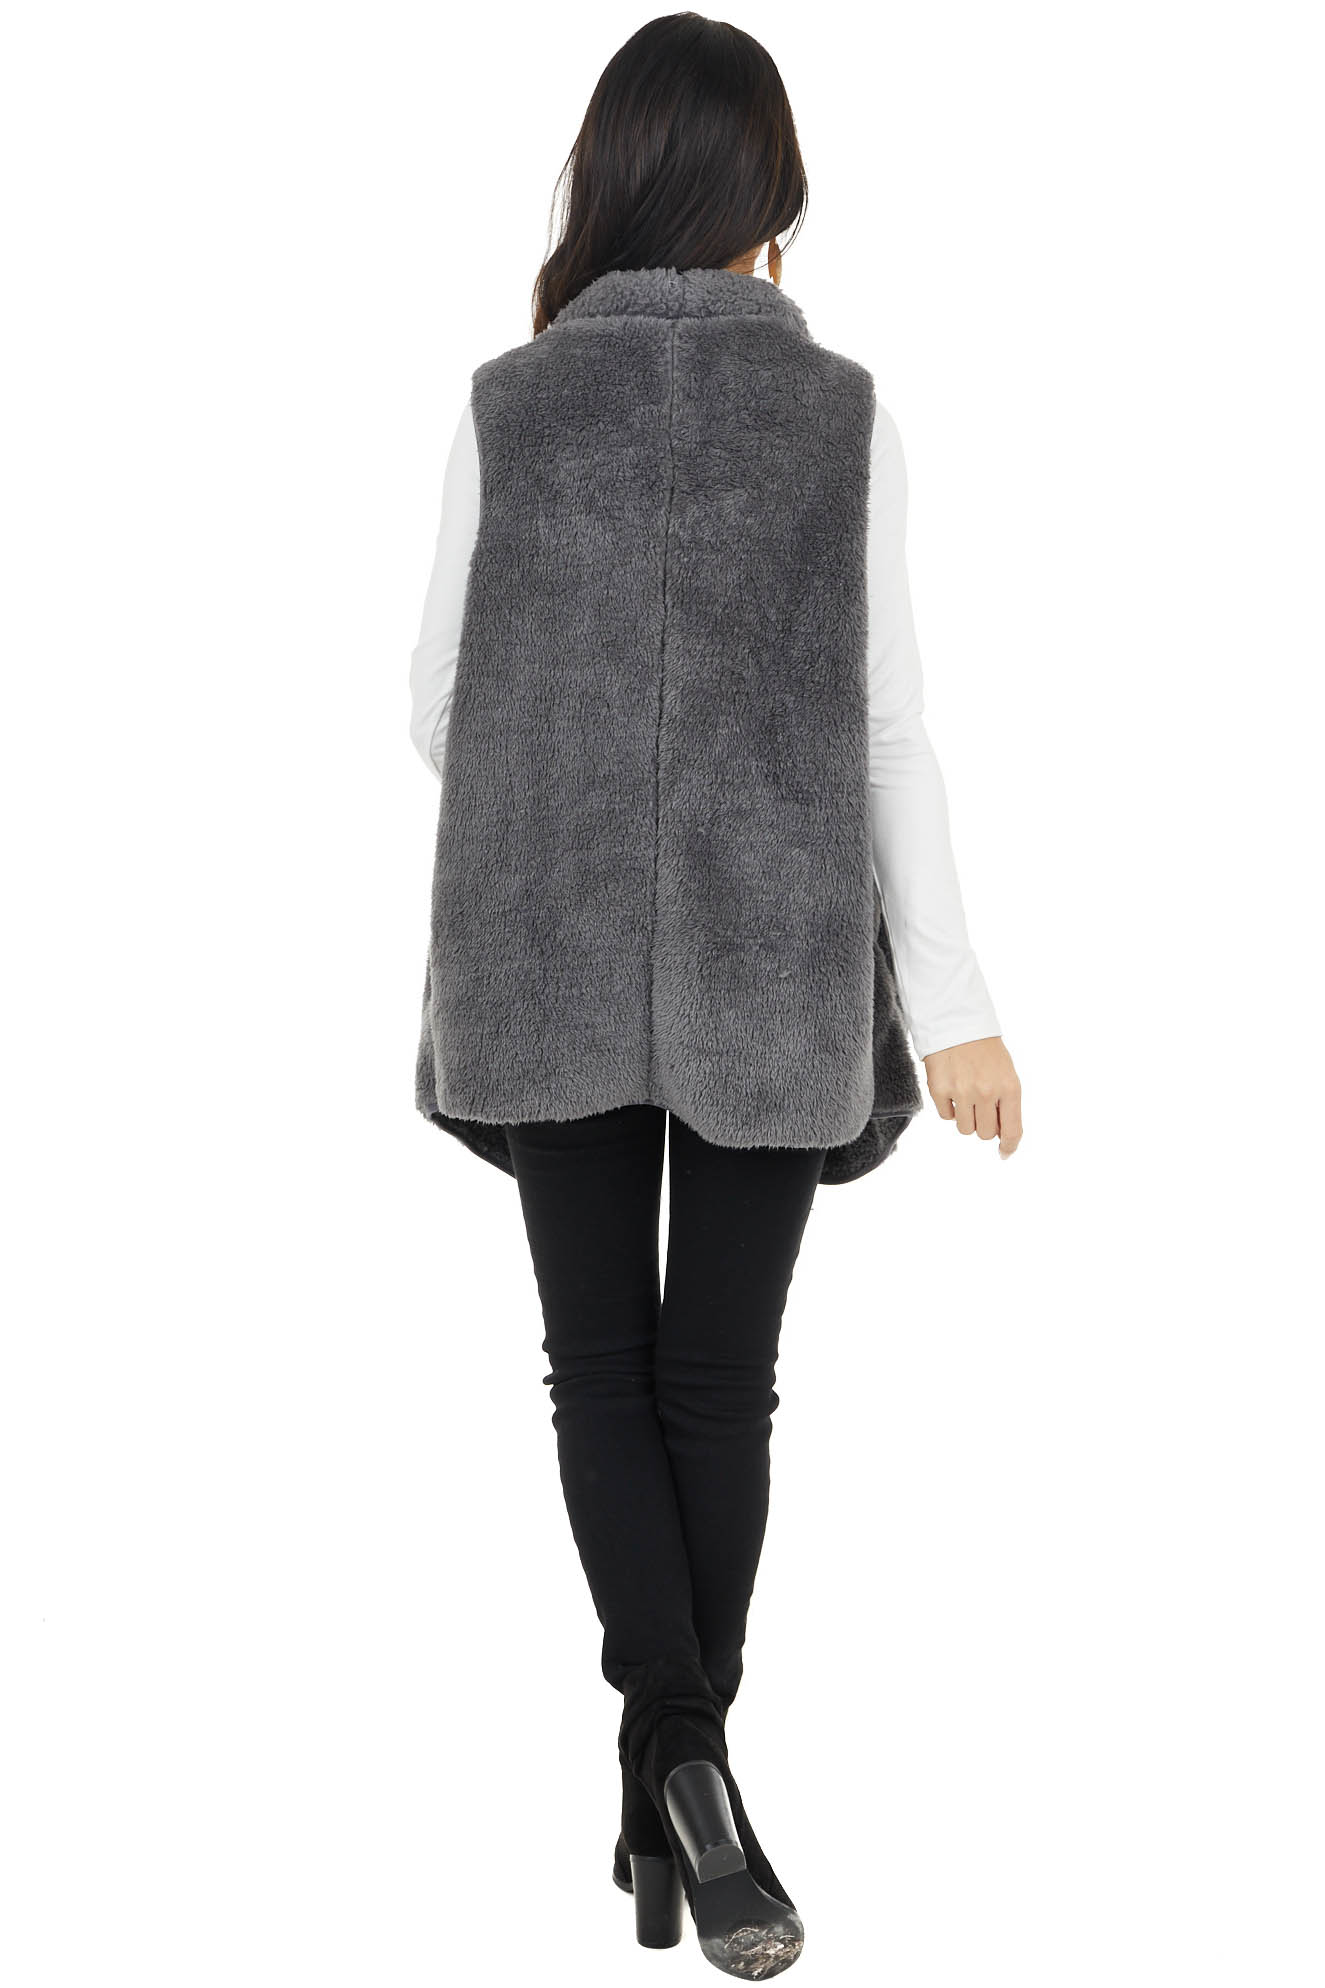 Charcoal Grey Faux Fur Open Front Vest with Pockets